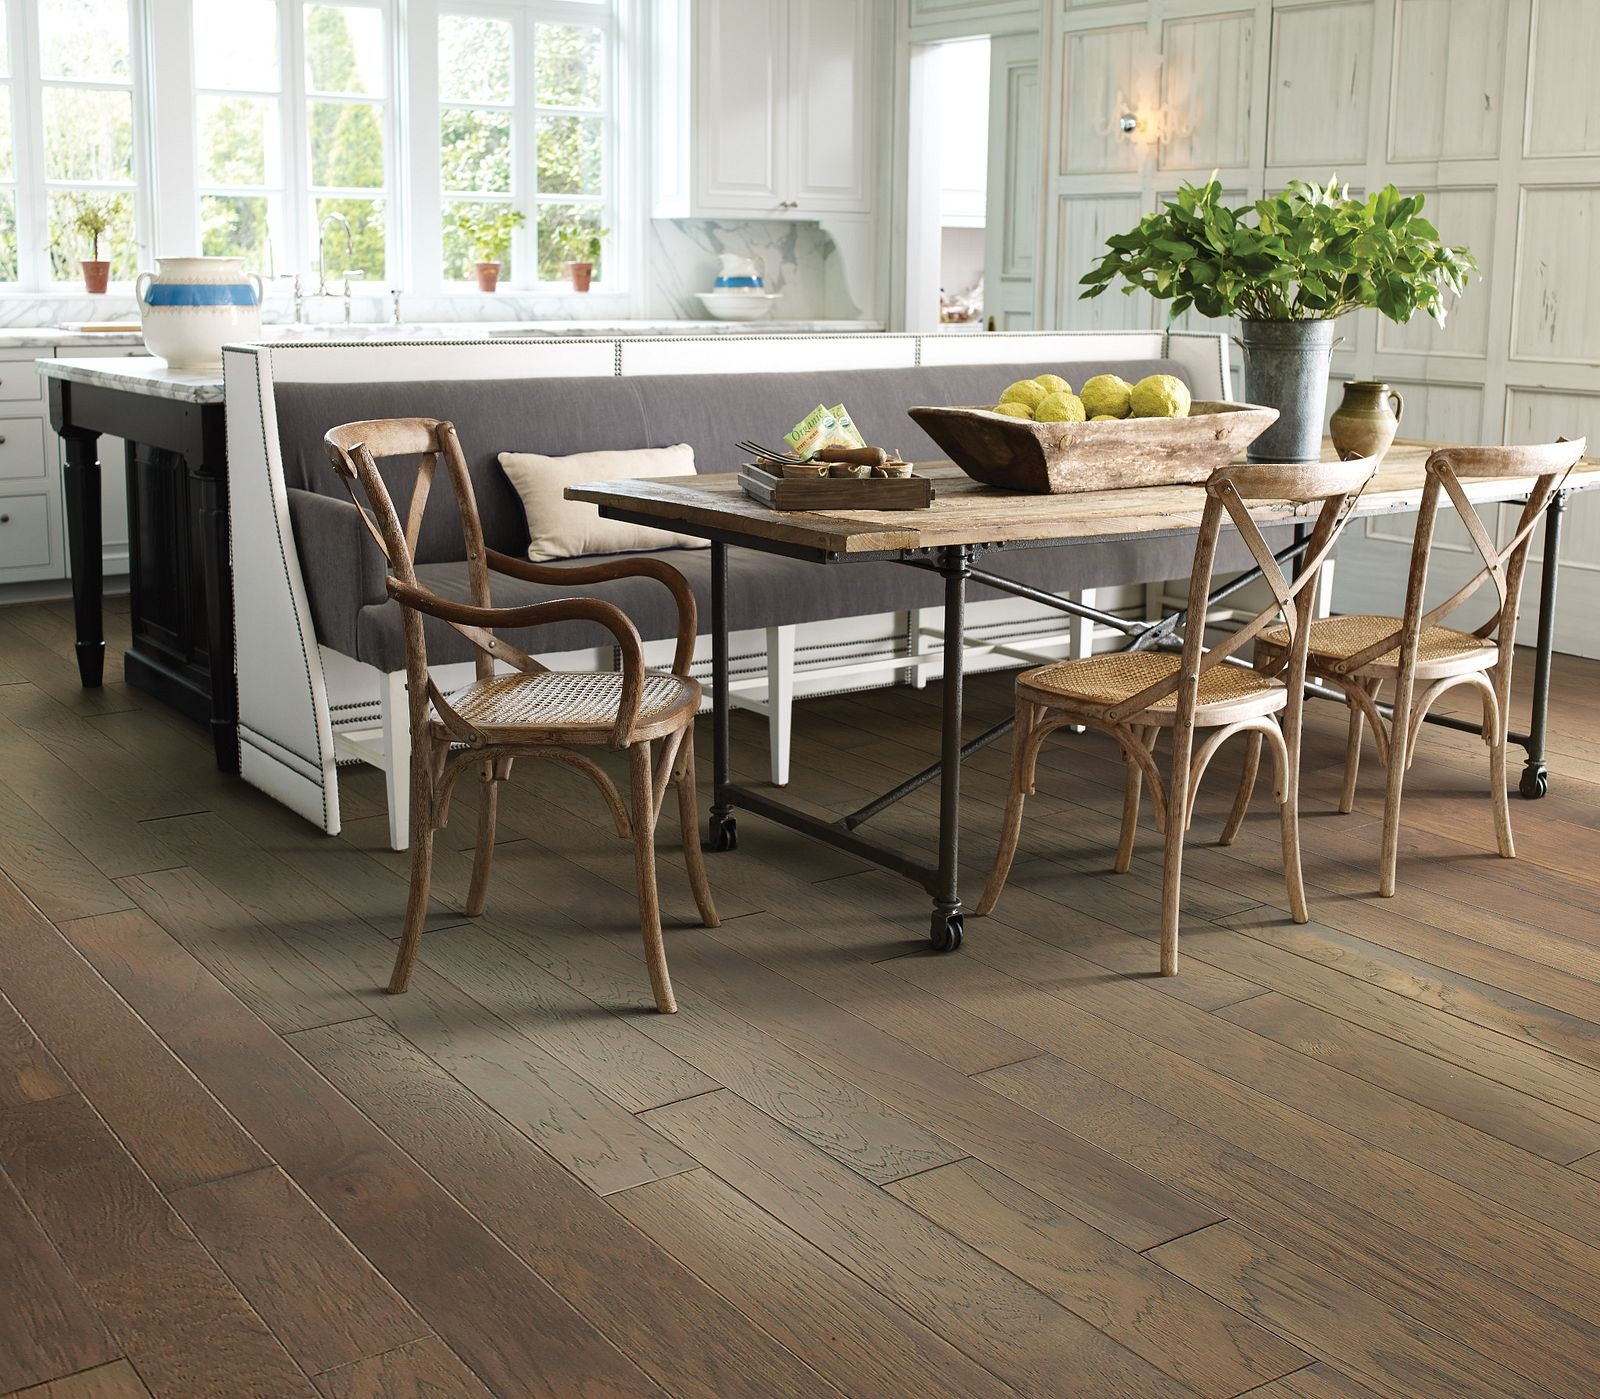 How To Install Hardwood Floor Molding Shaw Floors | Tile To Wood Stair Transition | Builder Grade | Upstairs | Residential | Laminate | Entryway